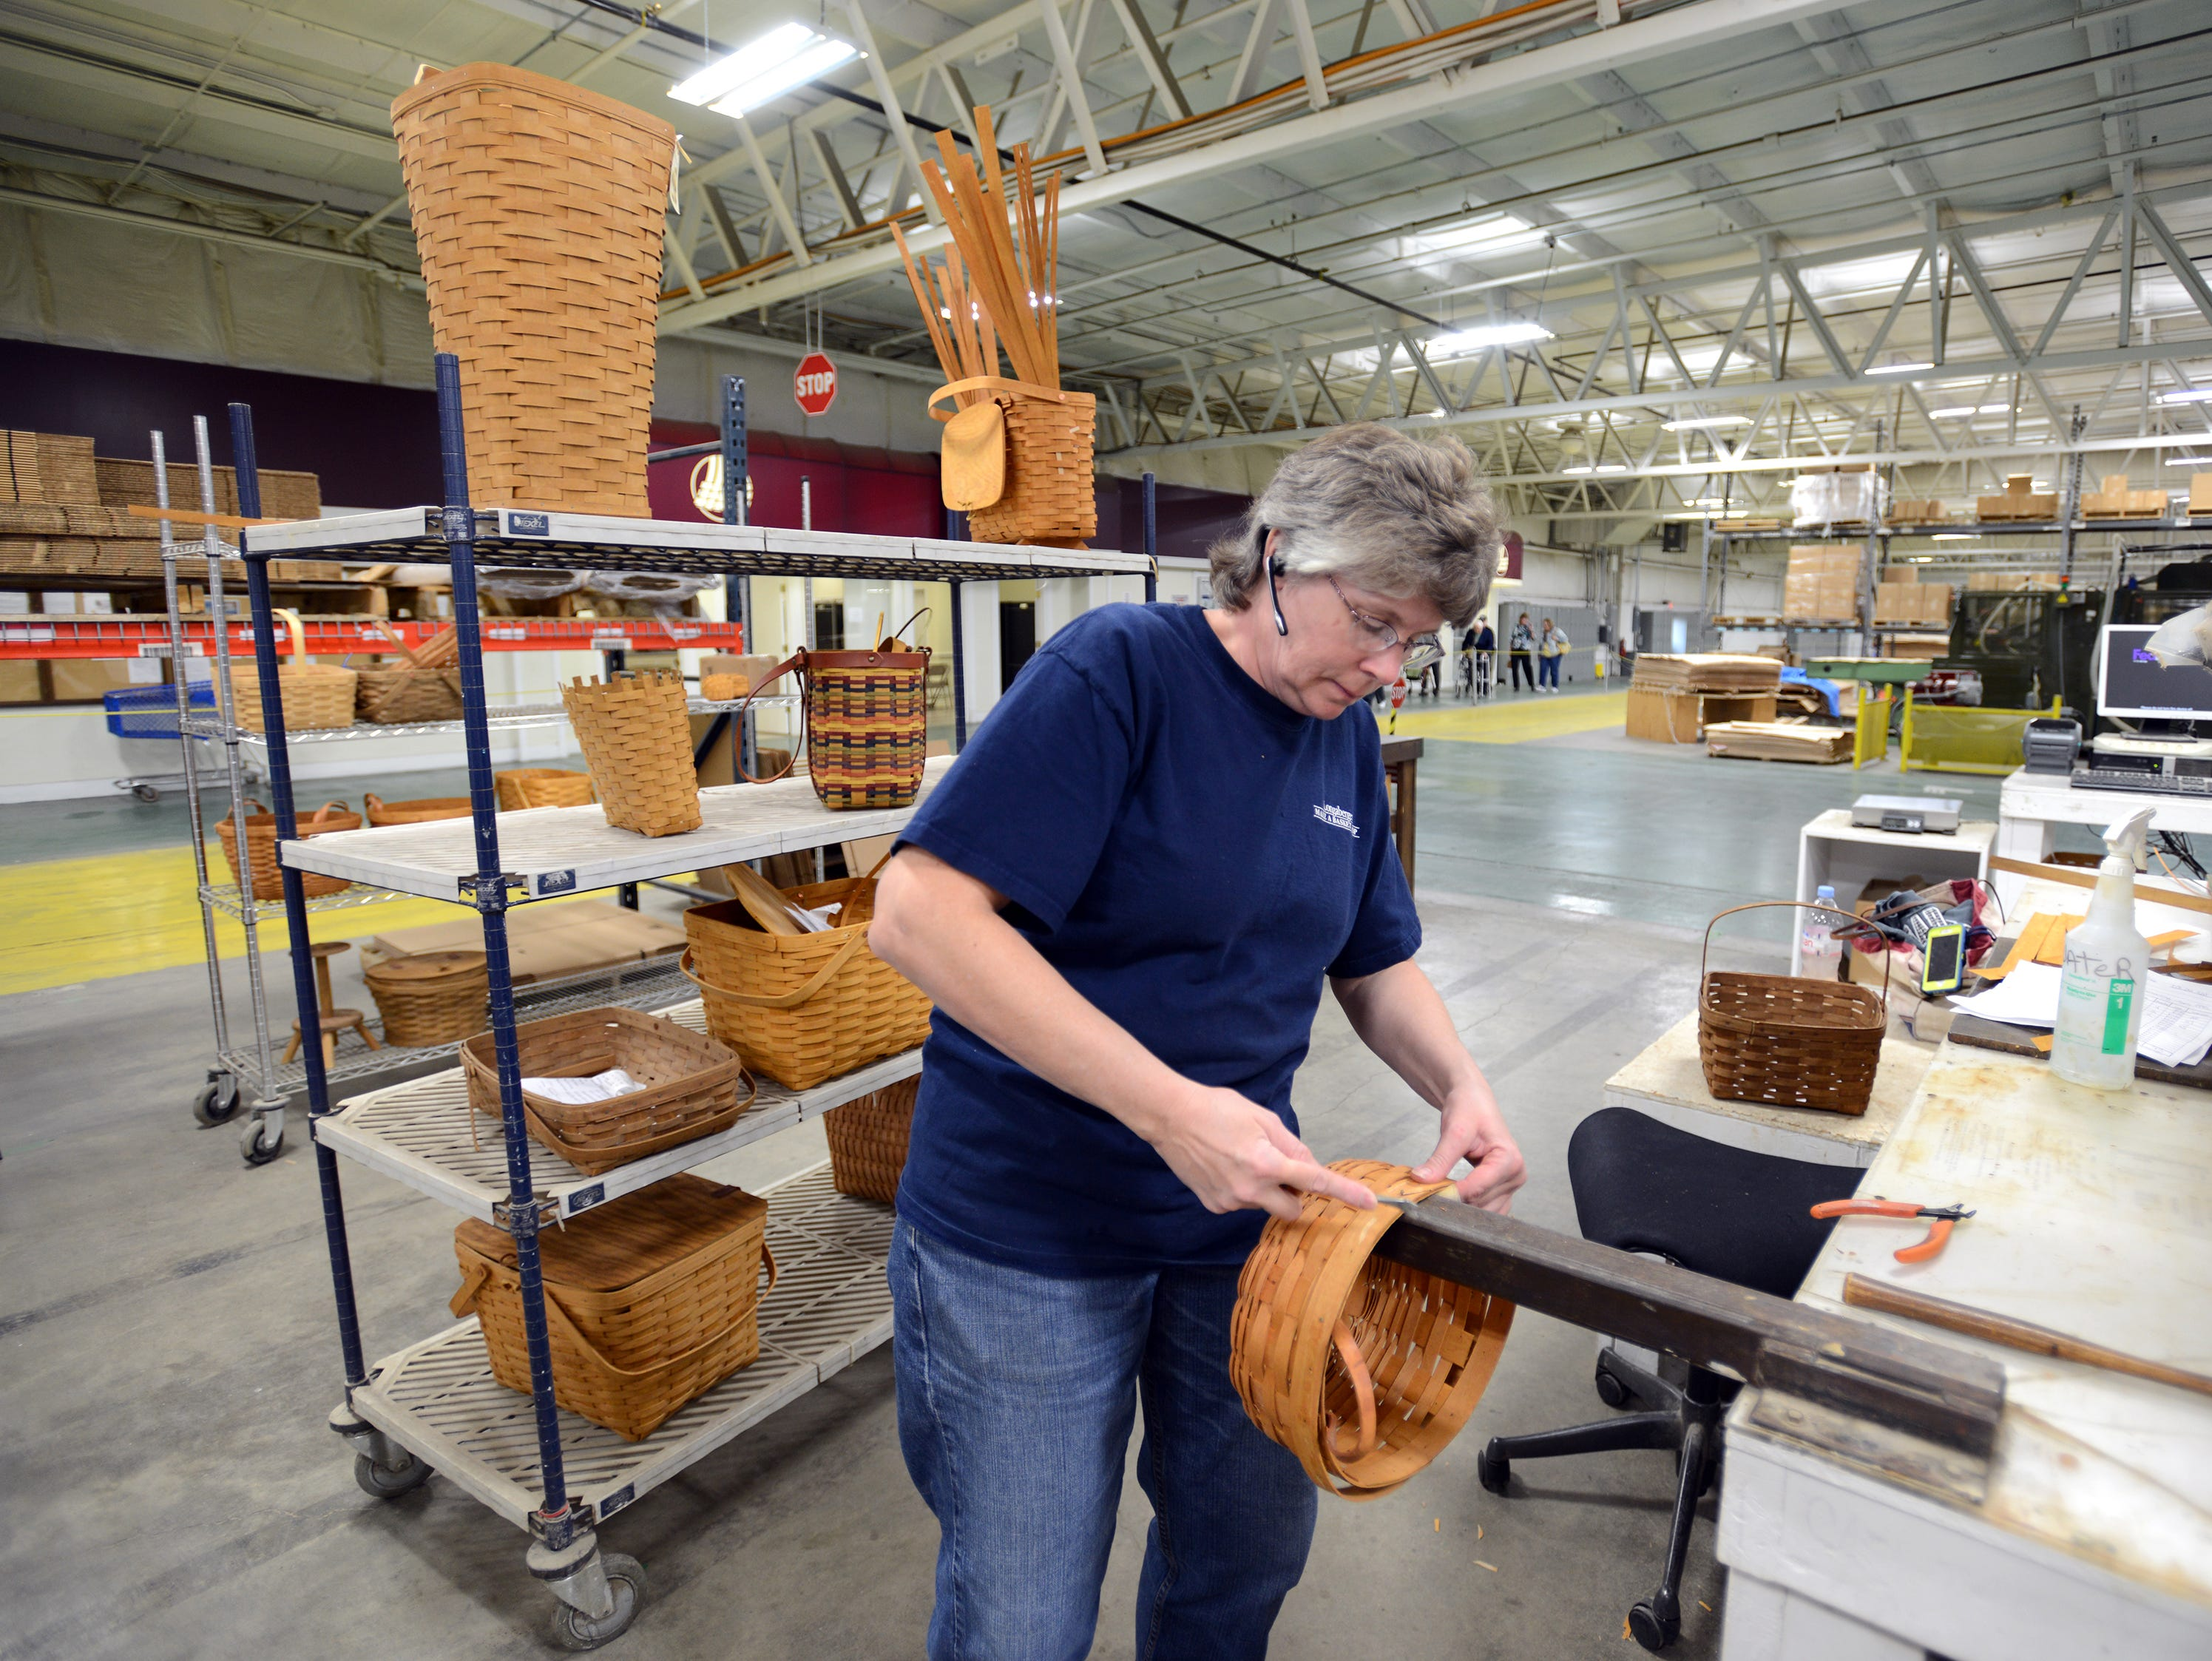 Longaberger has a restoration and repair service, and can repair baskets dating back to the first group made.